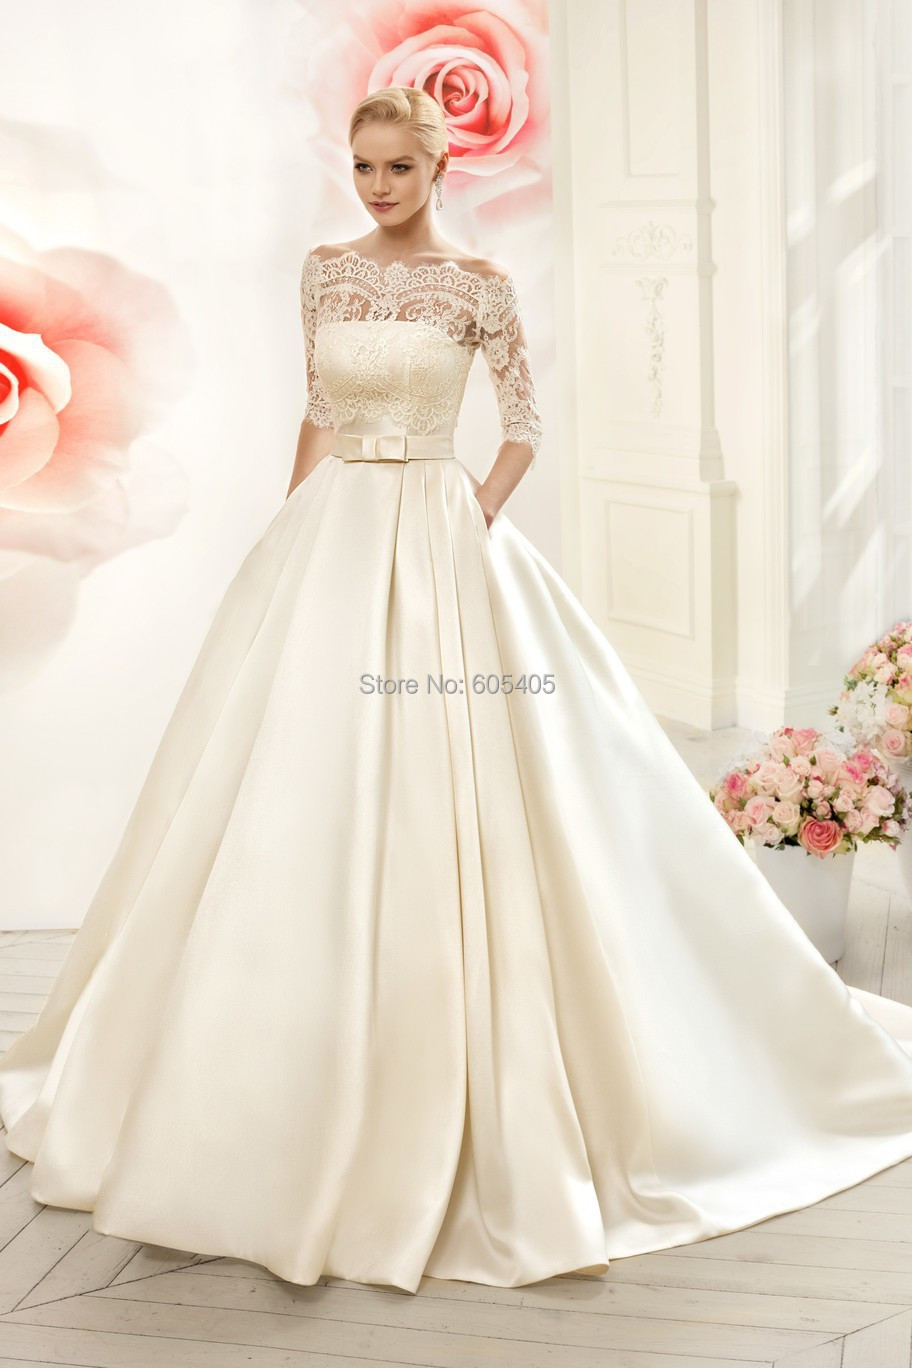 white reception dresses for brides popularity is rising in reception wedding dresses